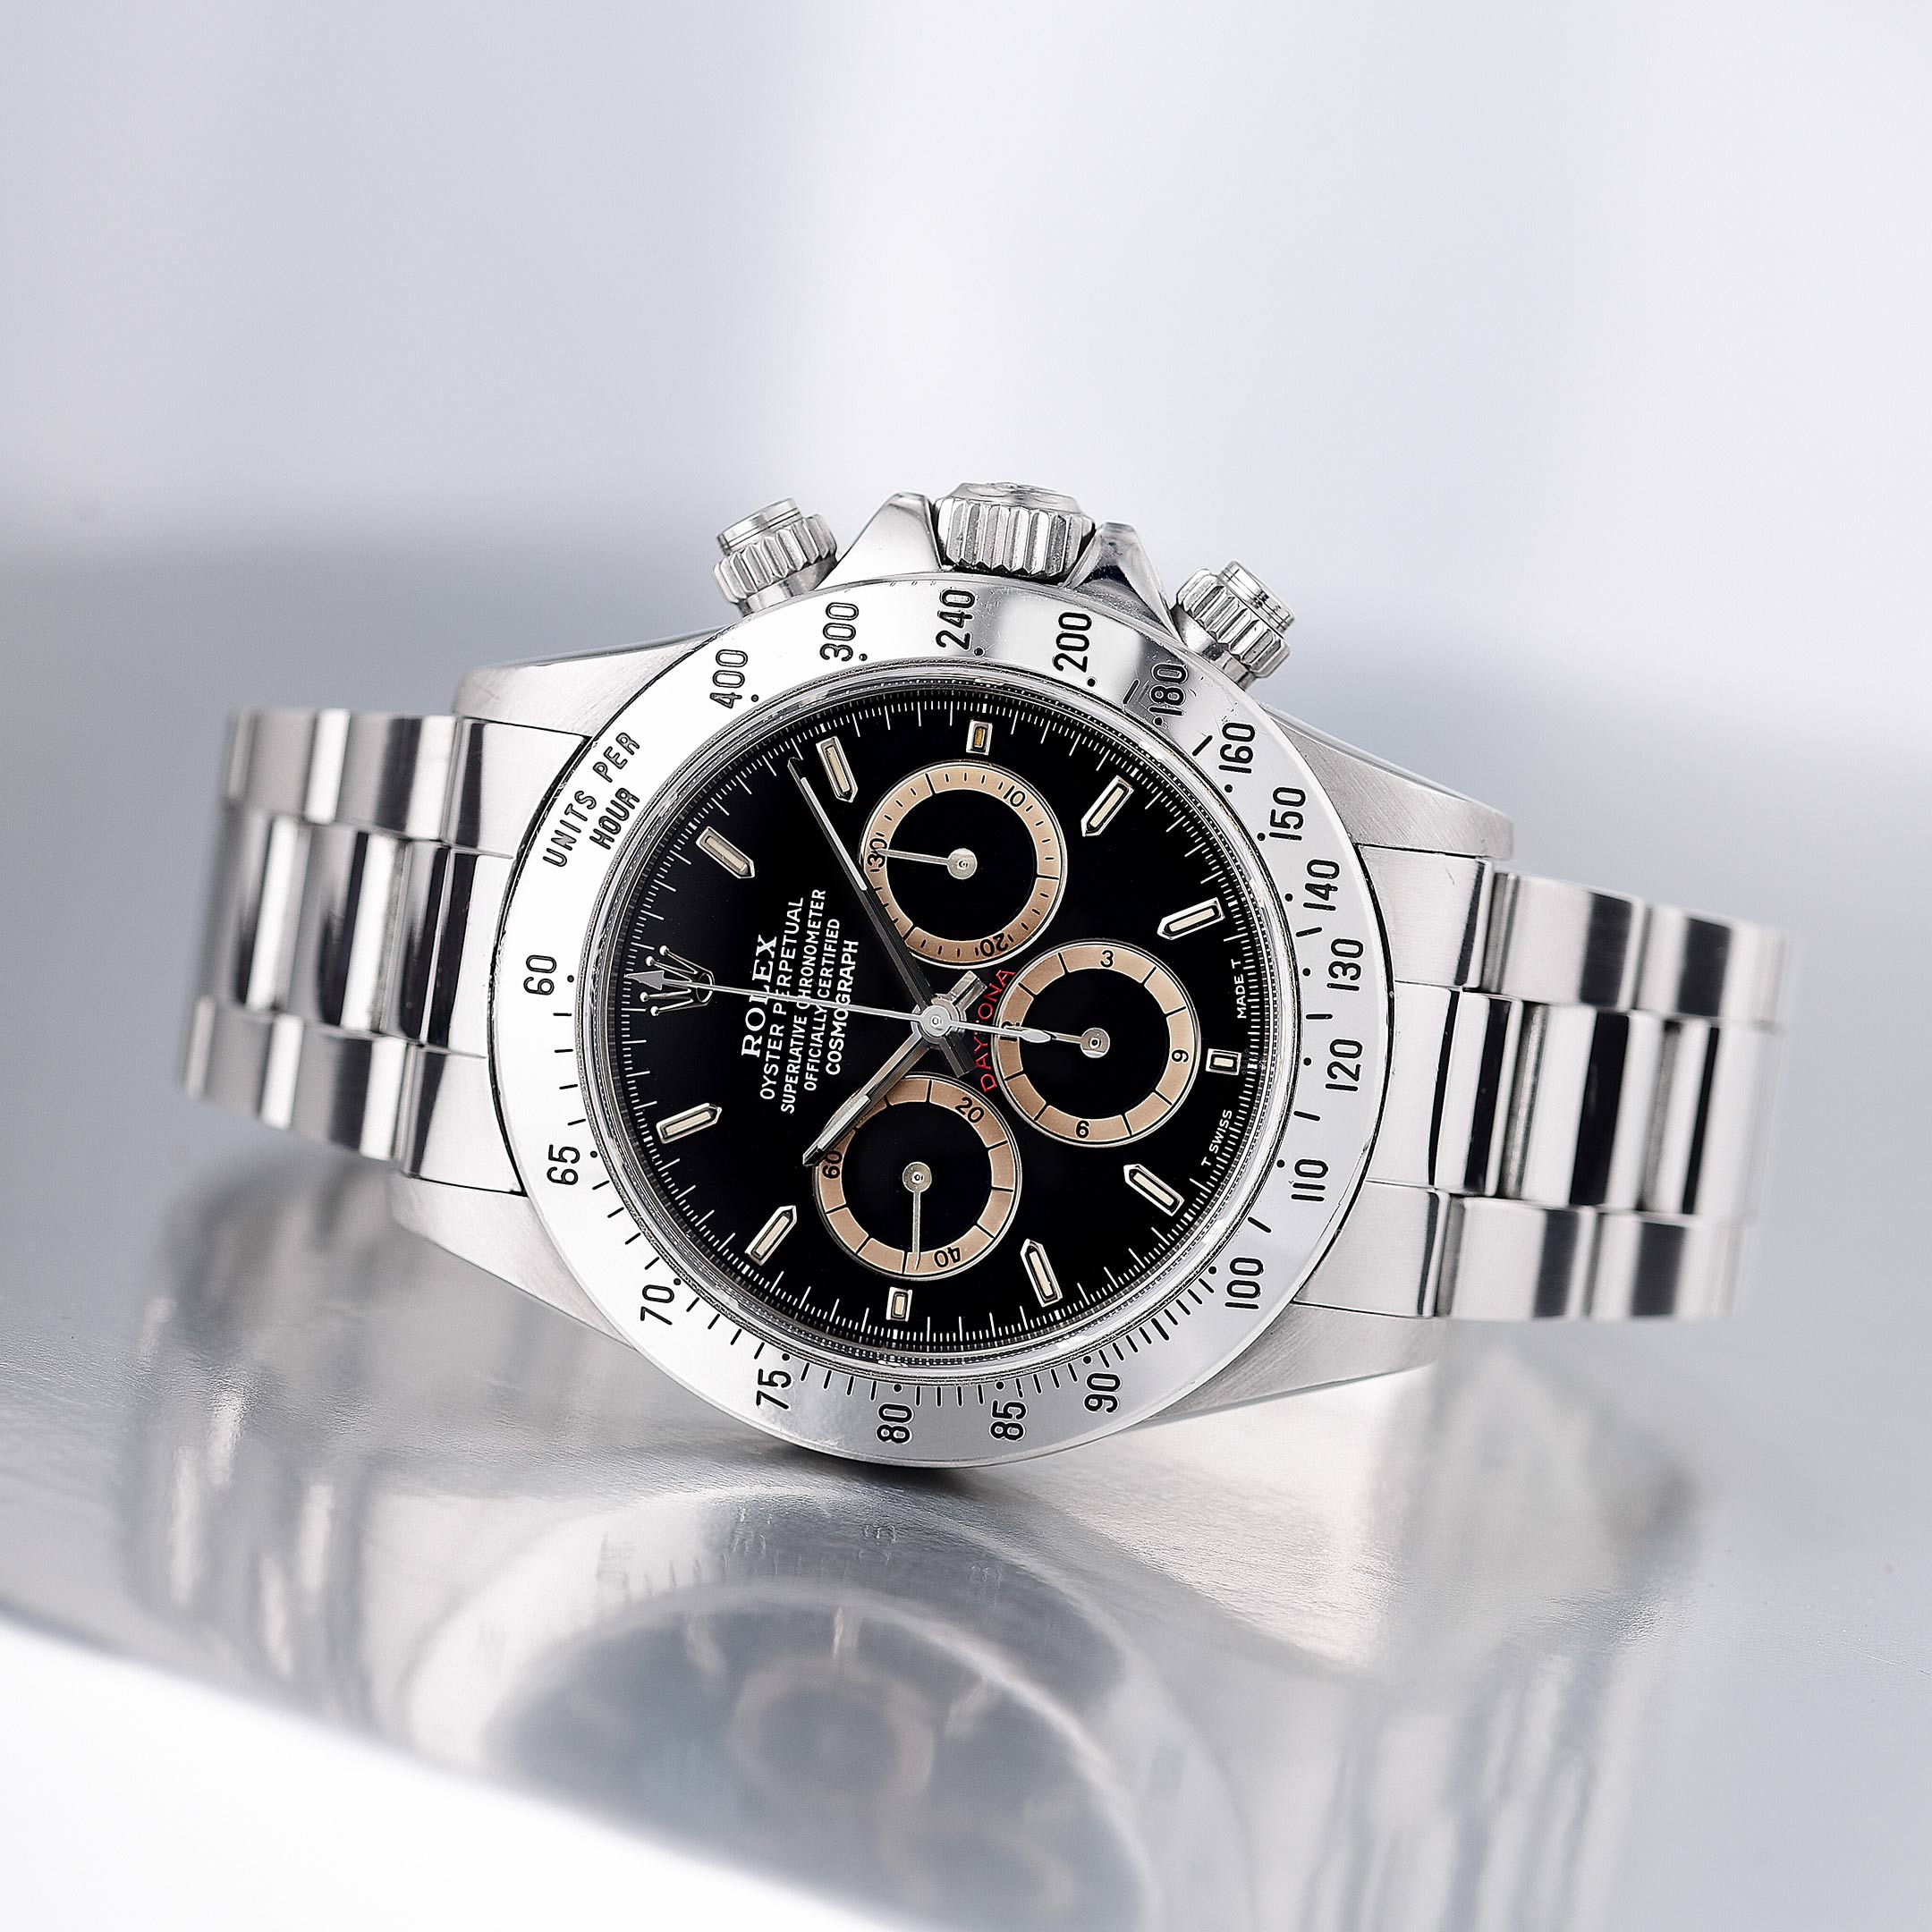 Rolex Daytona Ref. 16520 with Patrizzi Dial - Fortuna NYC Fine Jewelry & Watch Auction